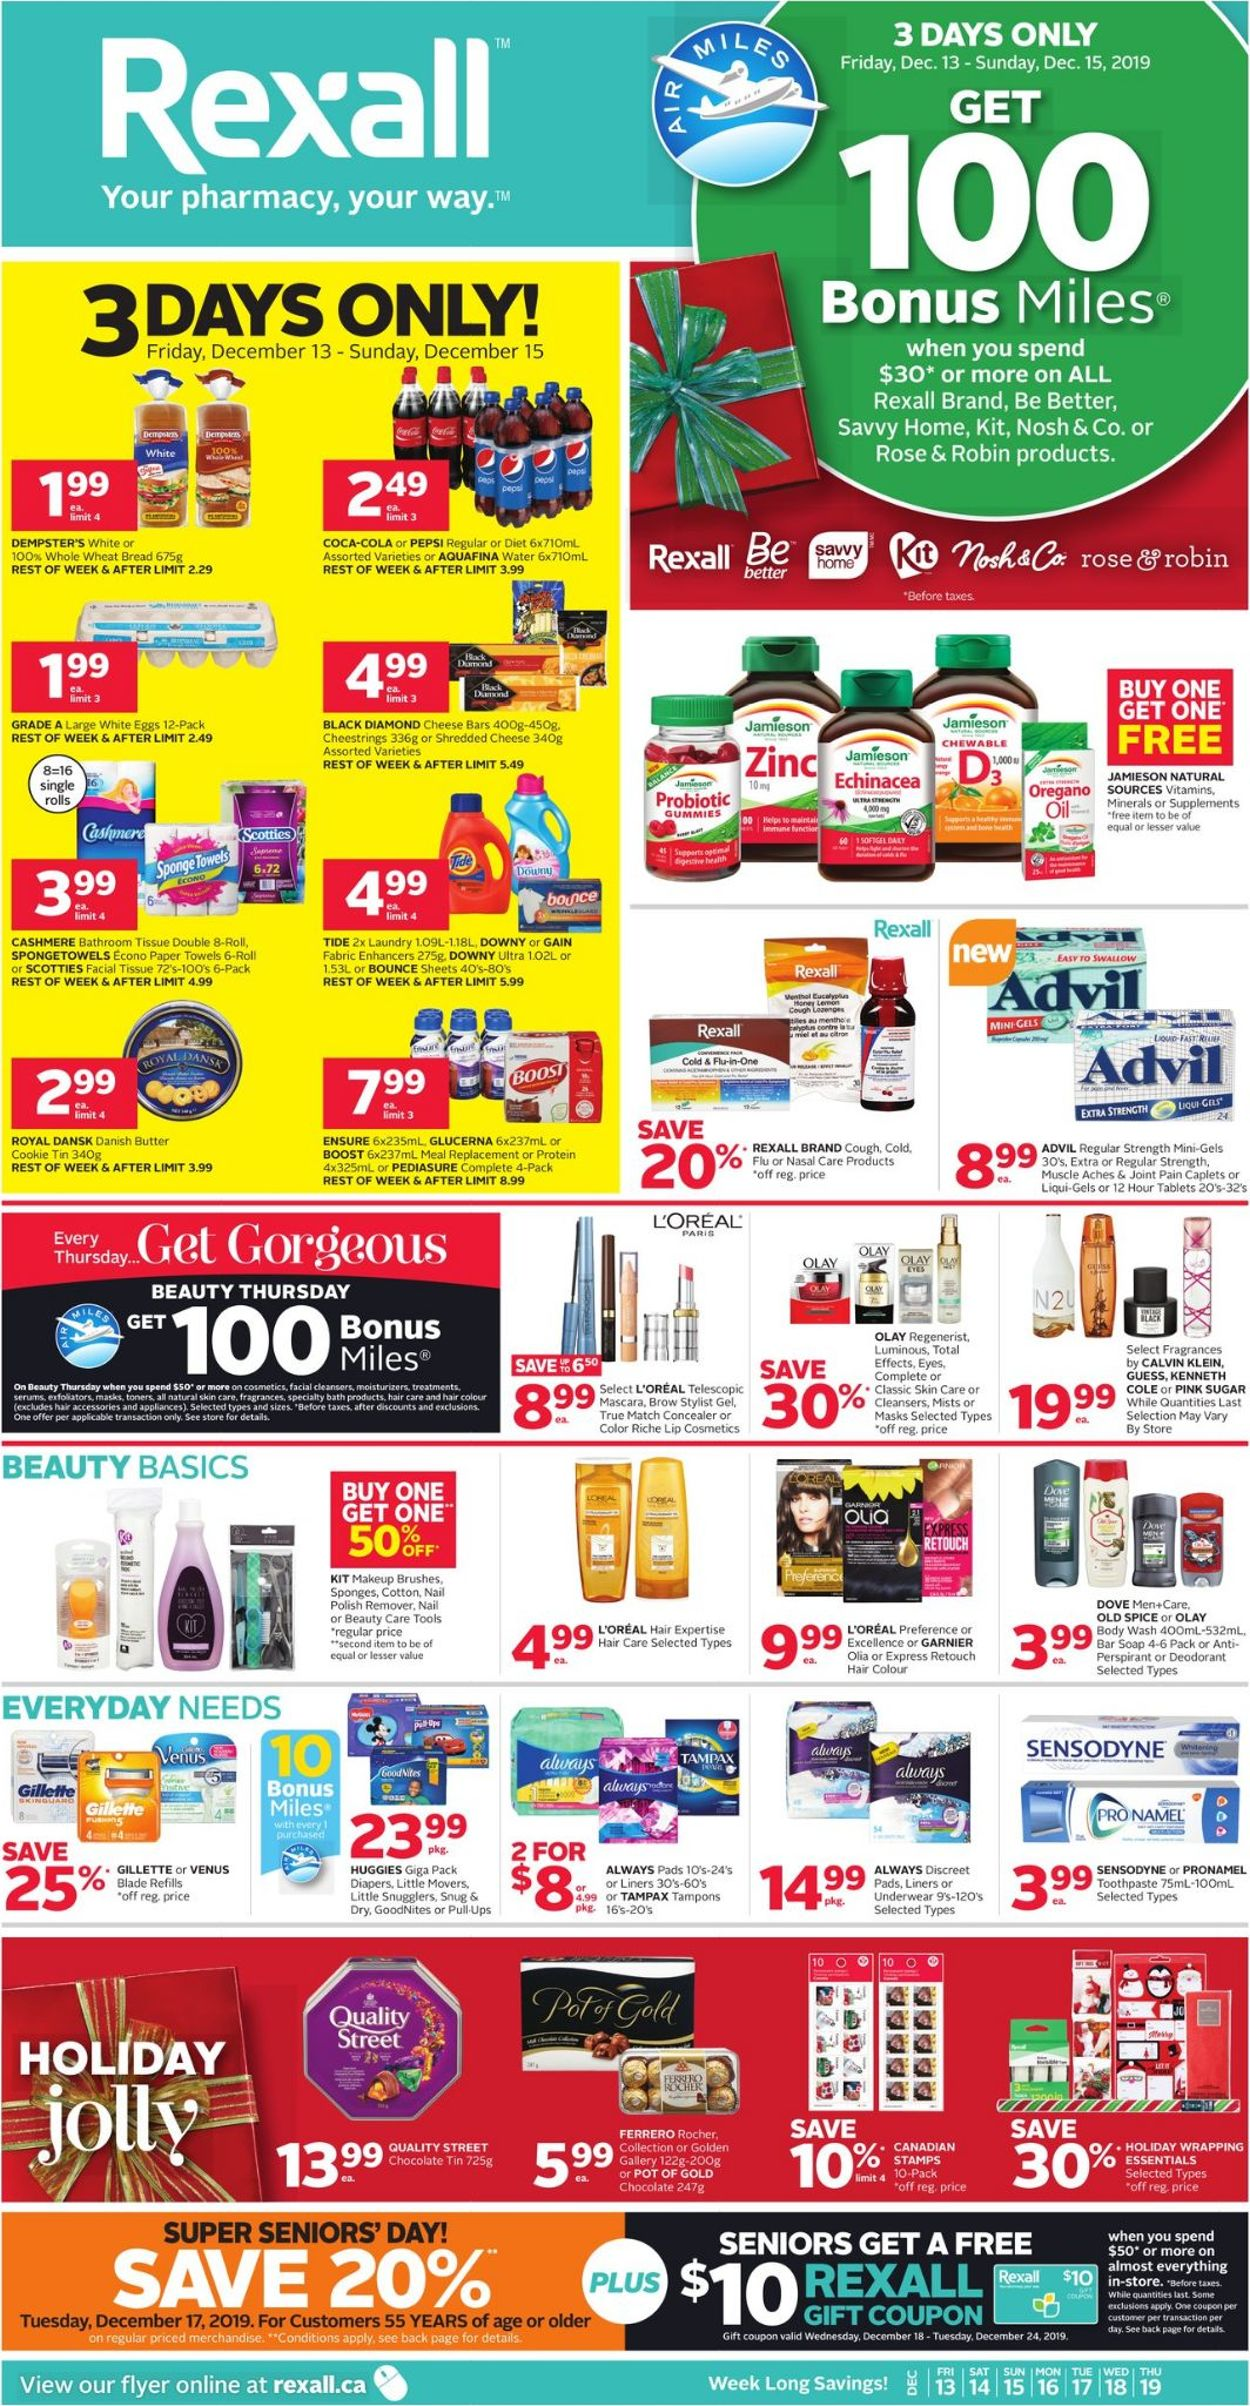 Rexall - HOLIDAY Flyer 2019 Flyer - 12/13-12/19/2019